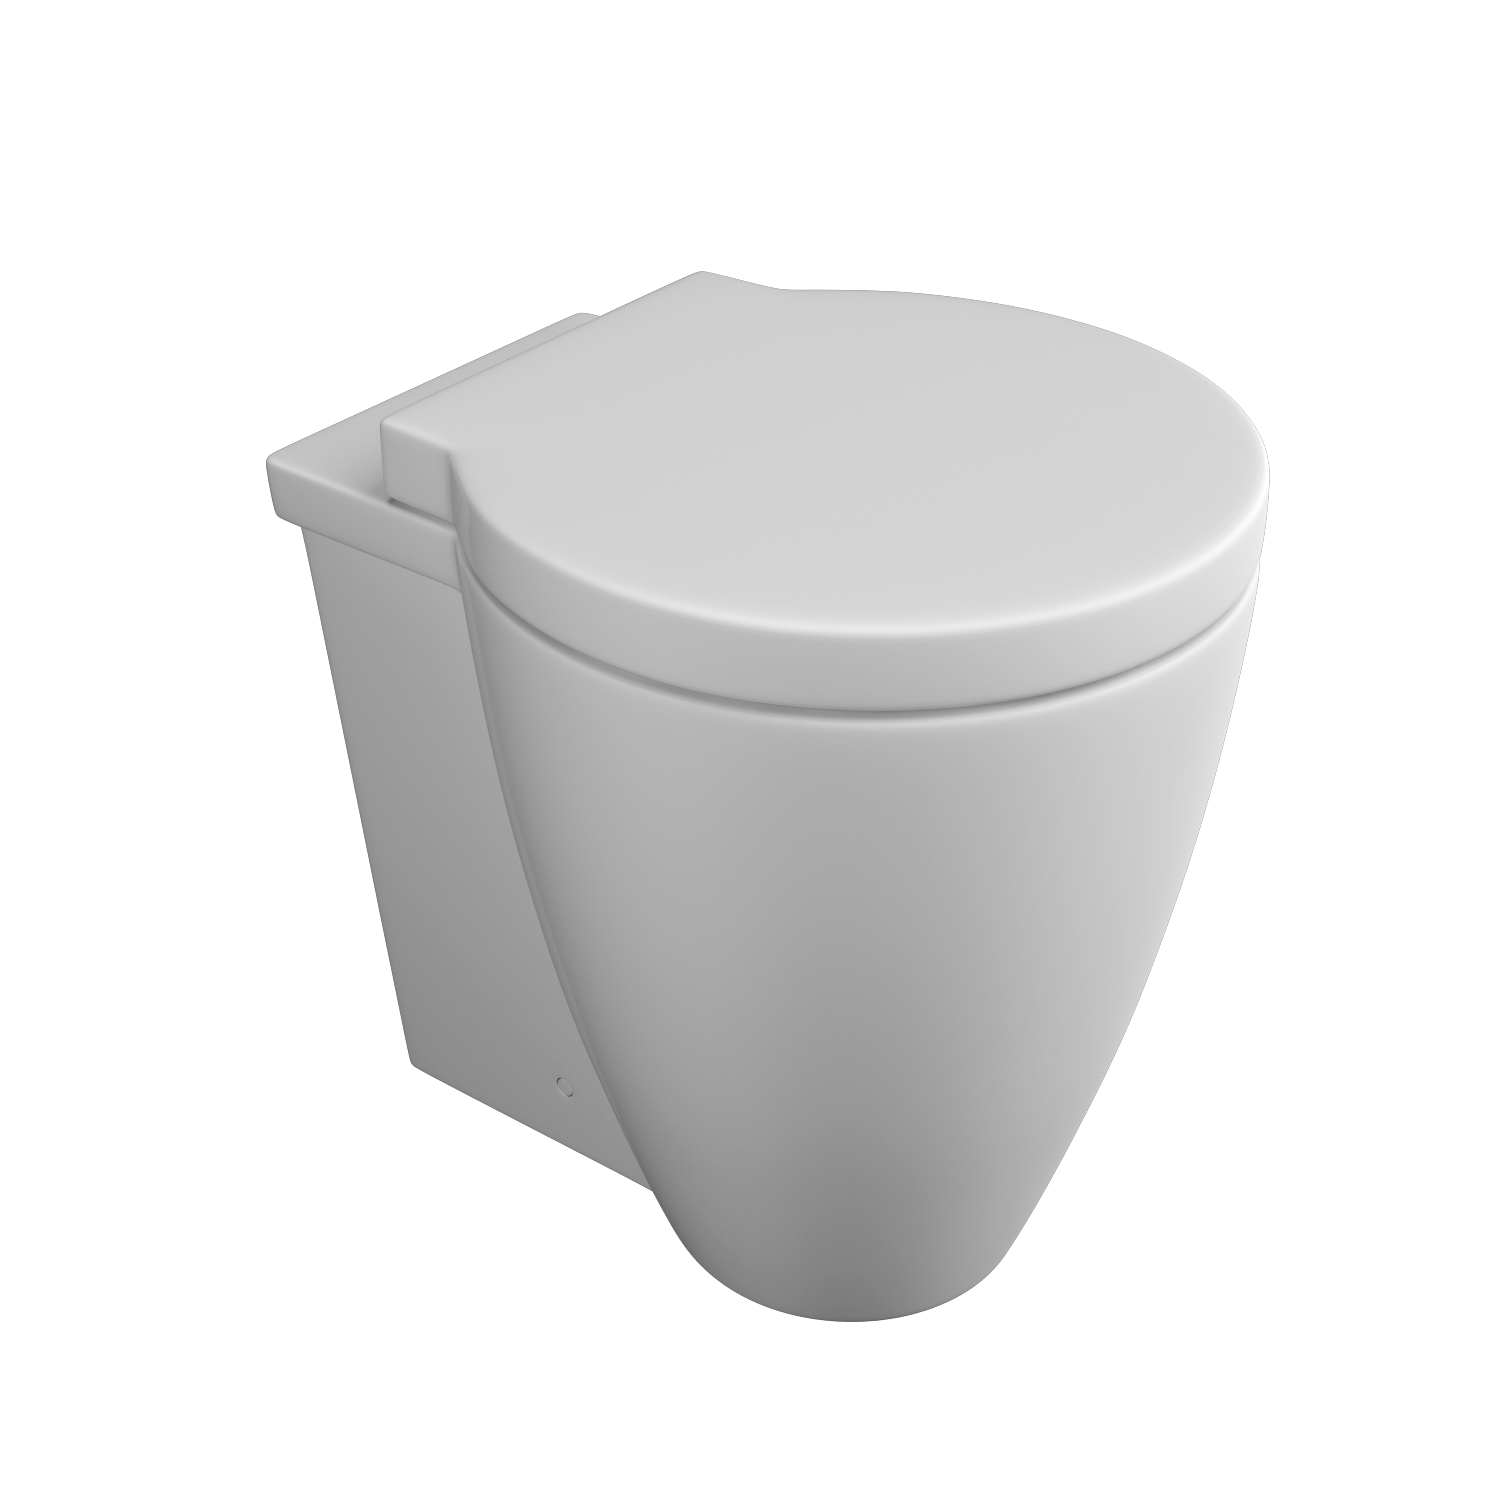 K-Vit Milano Back To Wall Pan (Seat Not Included)